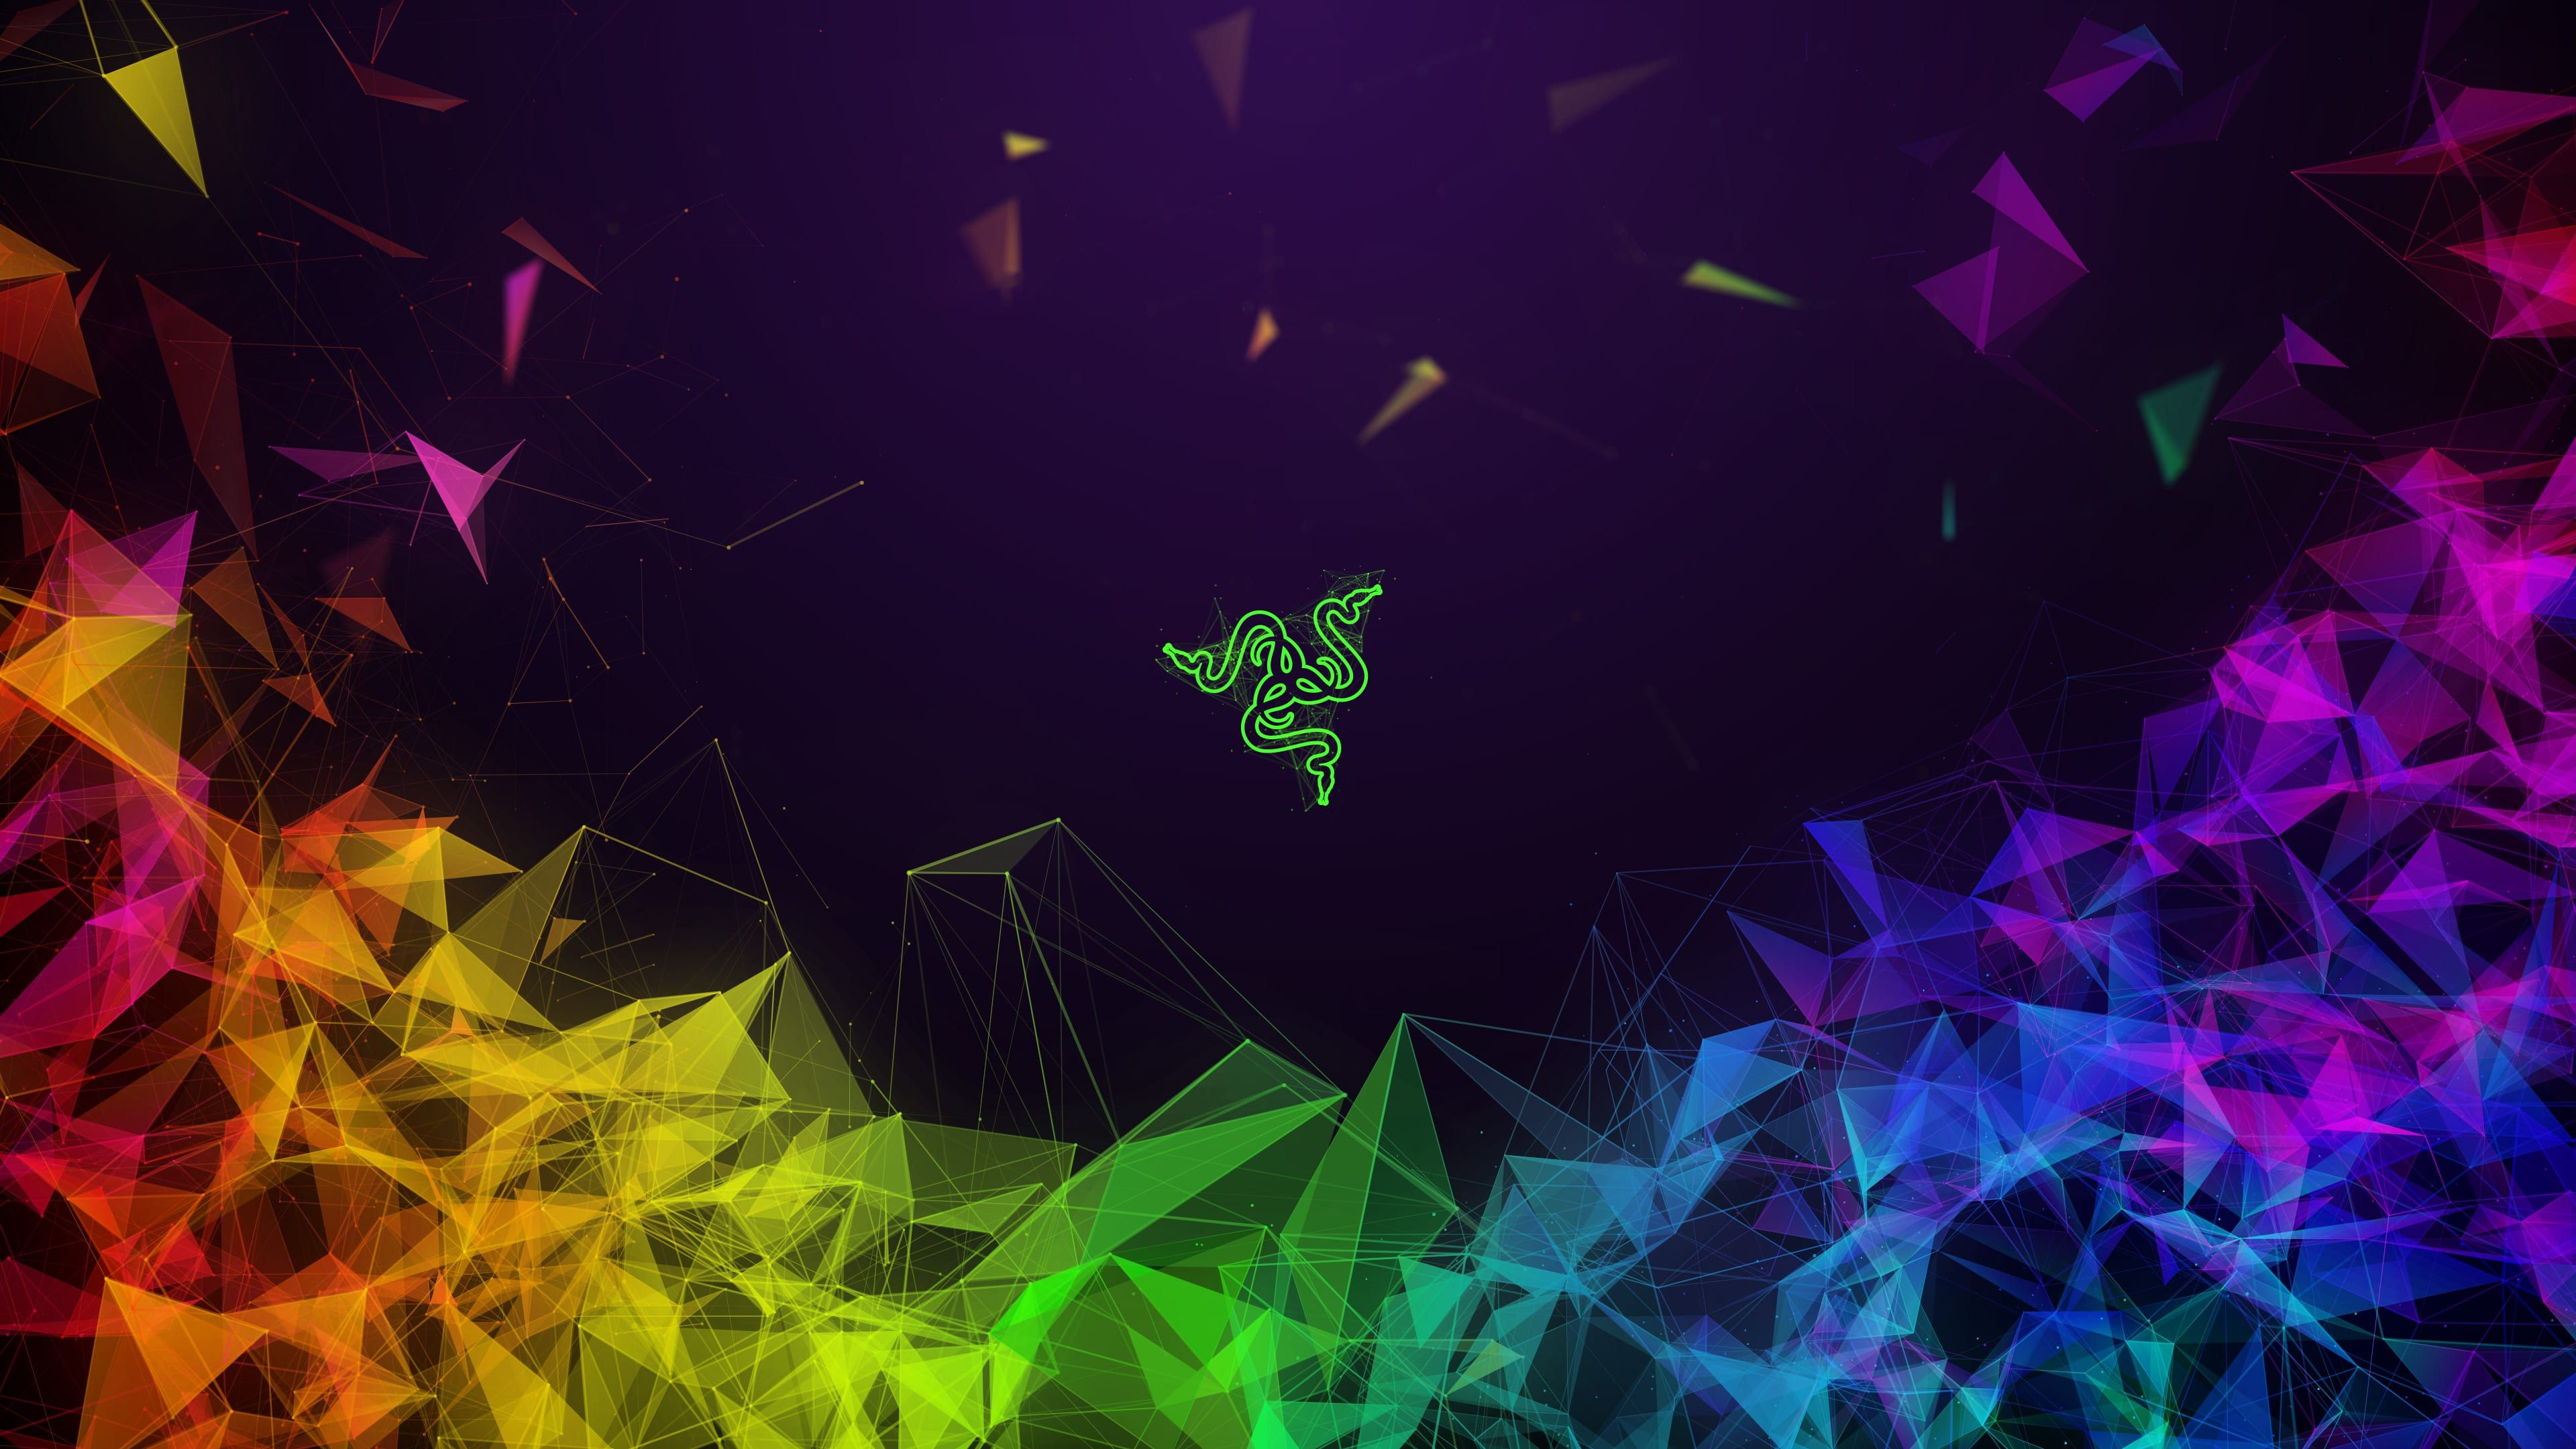 Razer Colorful Abstract 4k Uhd Wallpaper Aesthetic Desktop